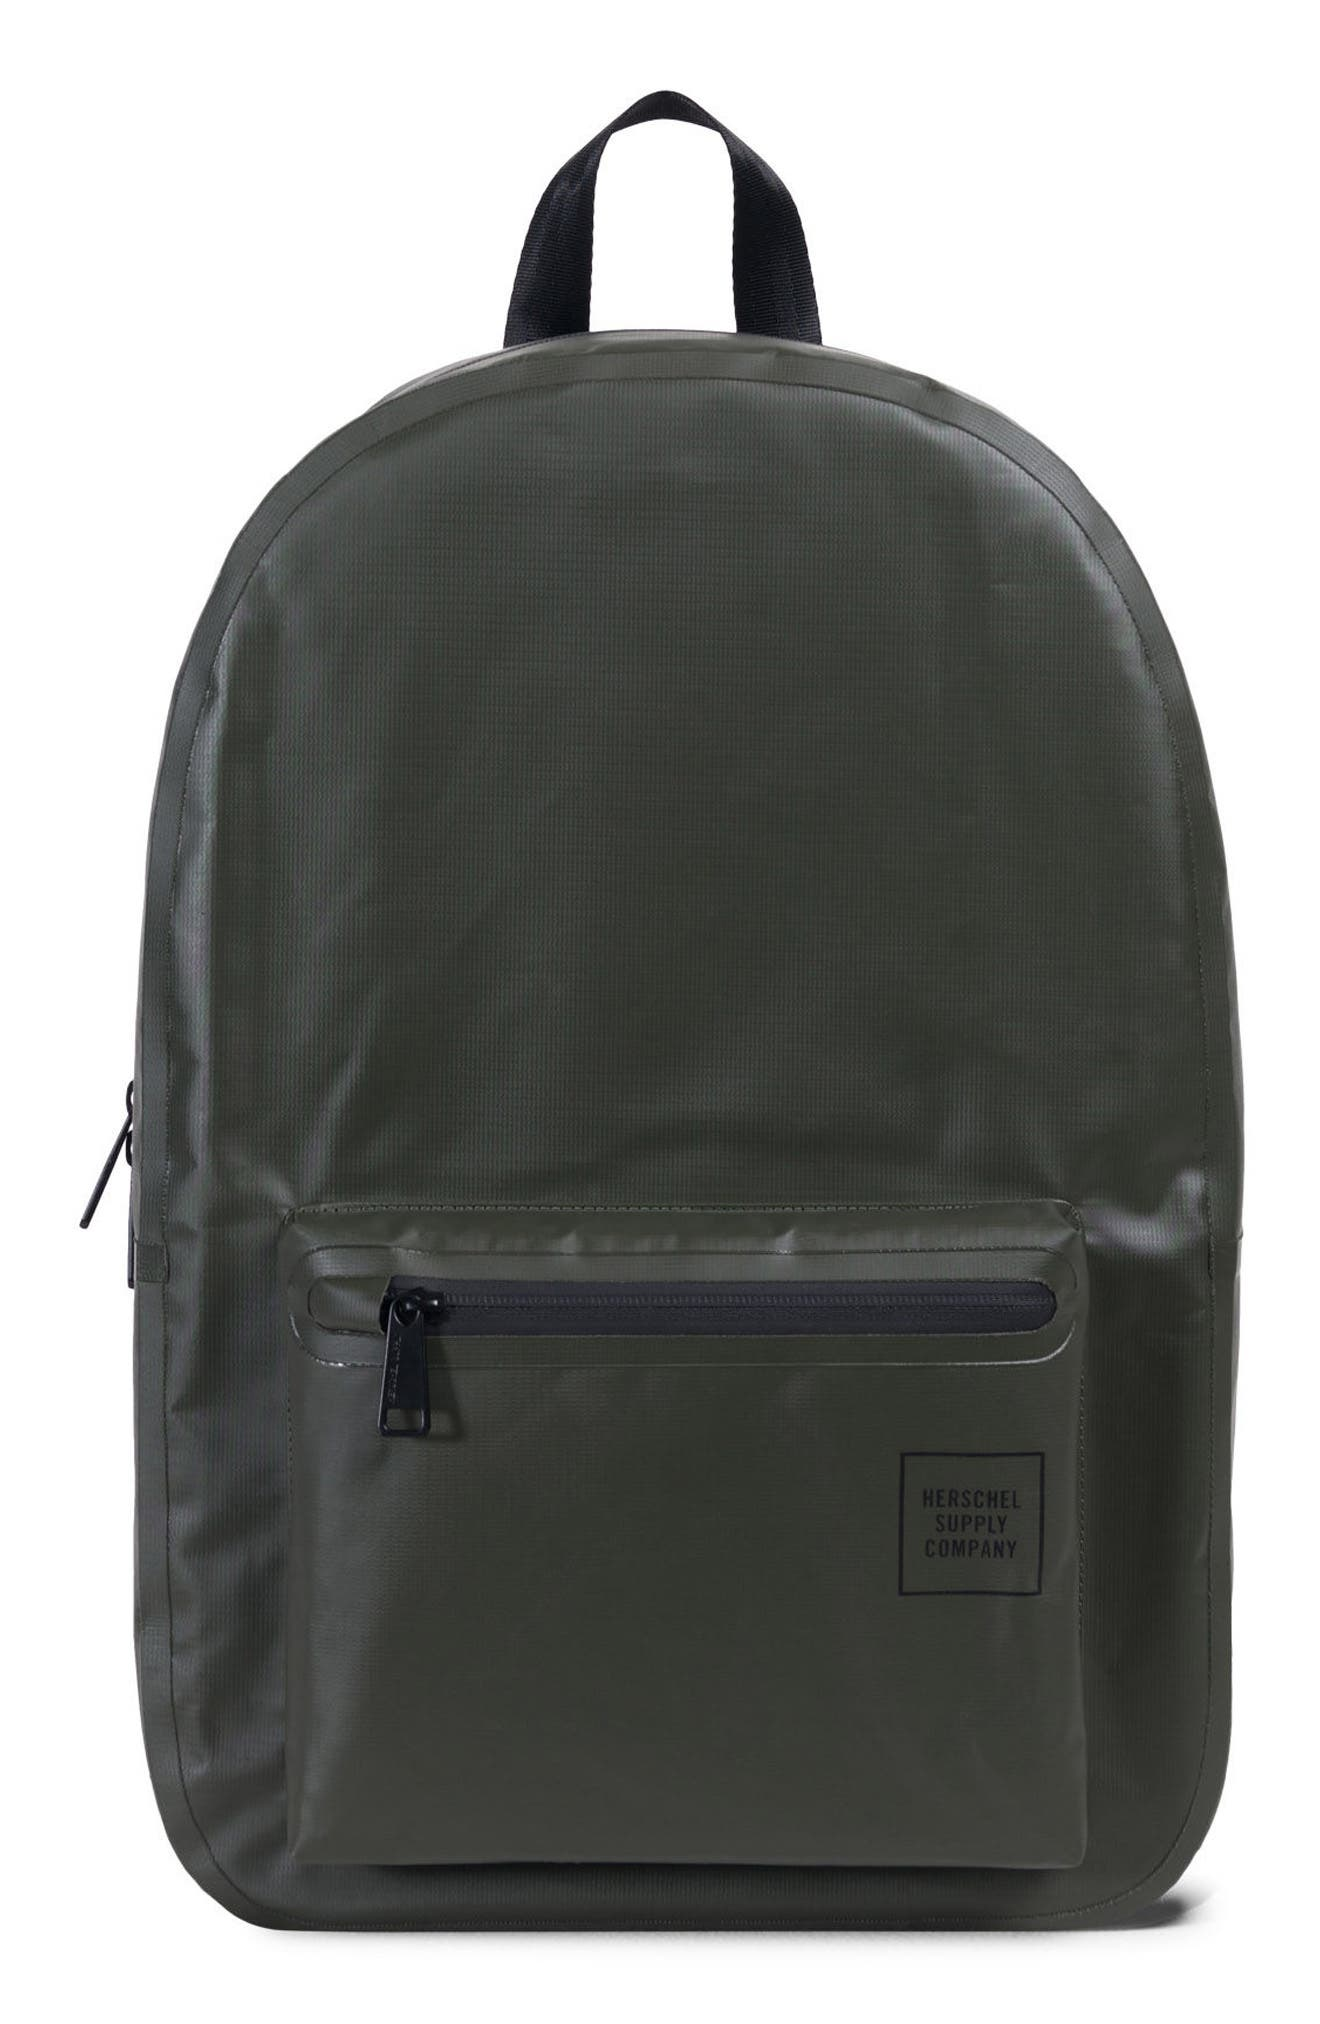 Main Image - Herschel Supply Co. Settlement Studio Backpack